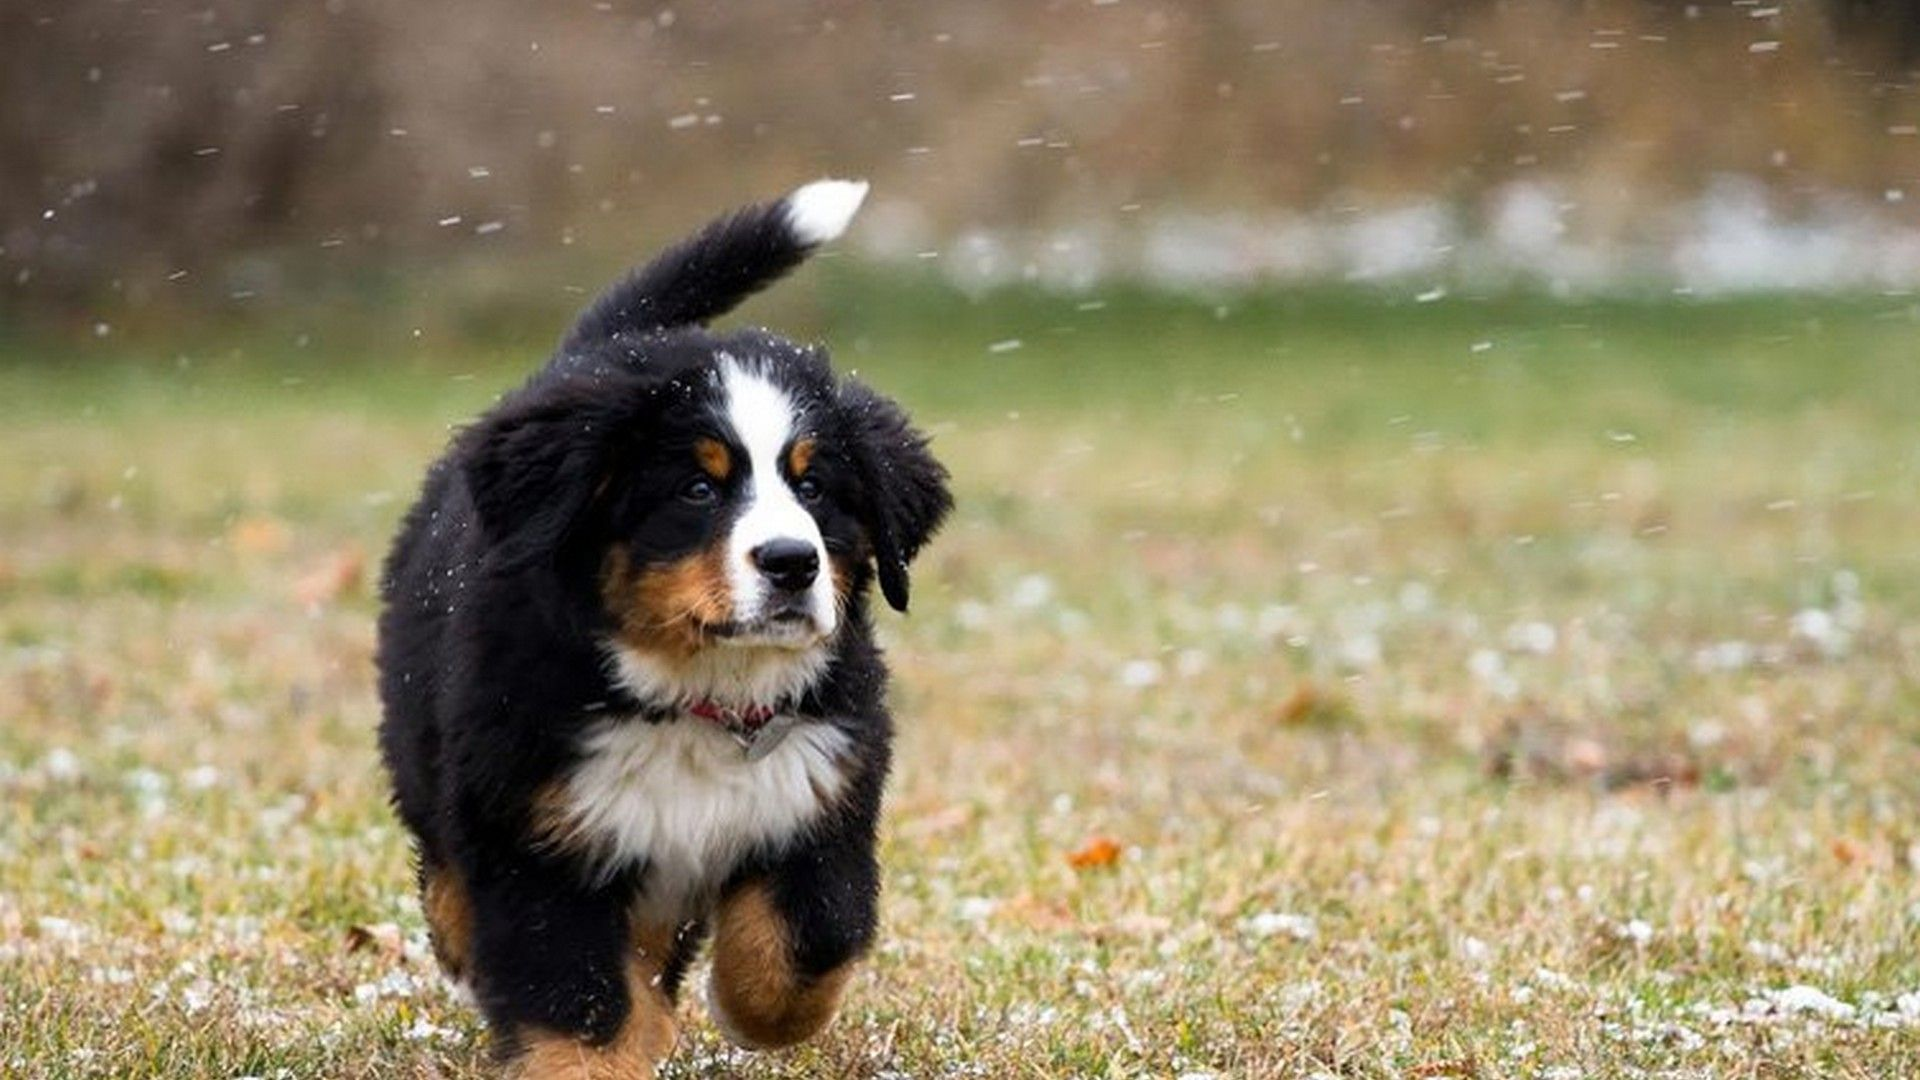 Hd Cute Puppies Pictures Backgrounds Best Hd Wallpapers Bernese Mountain Dog Puppy Puppy Dog Images Dogs And Puppies